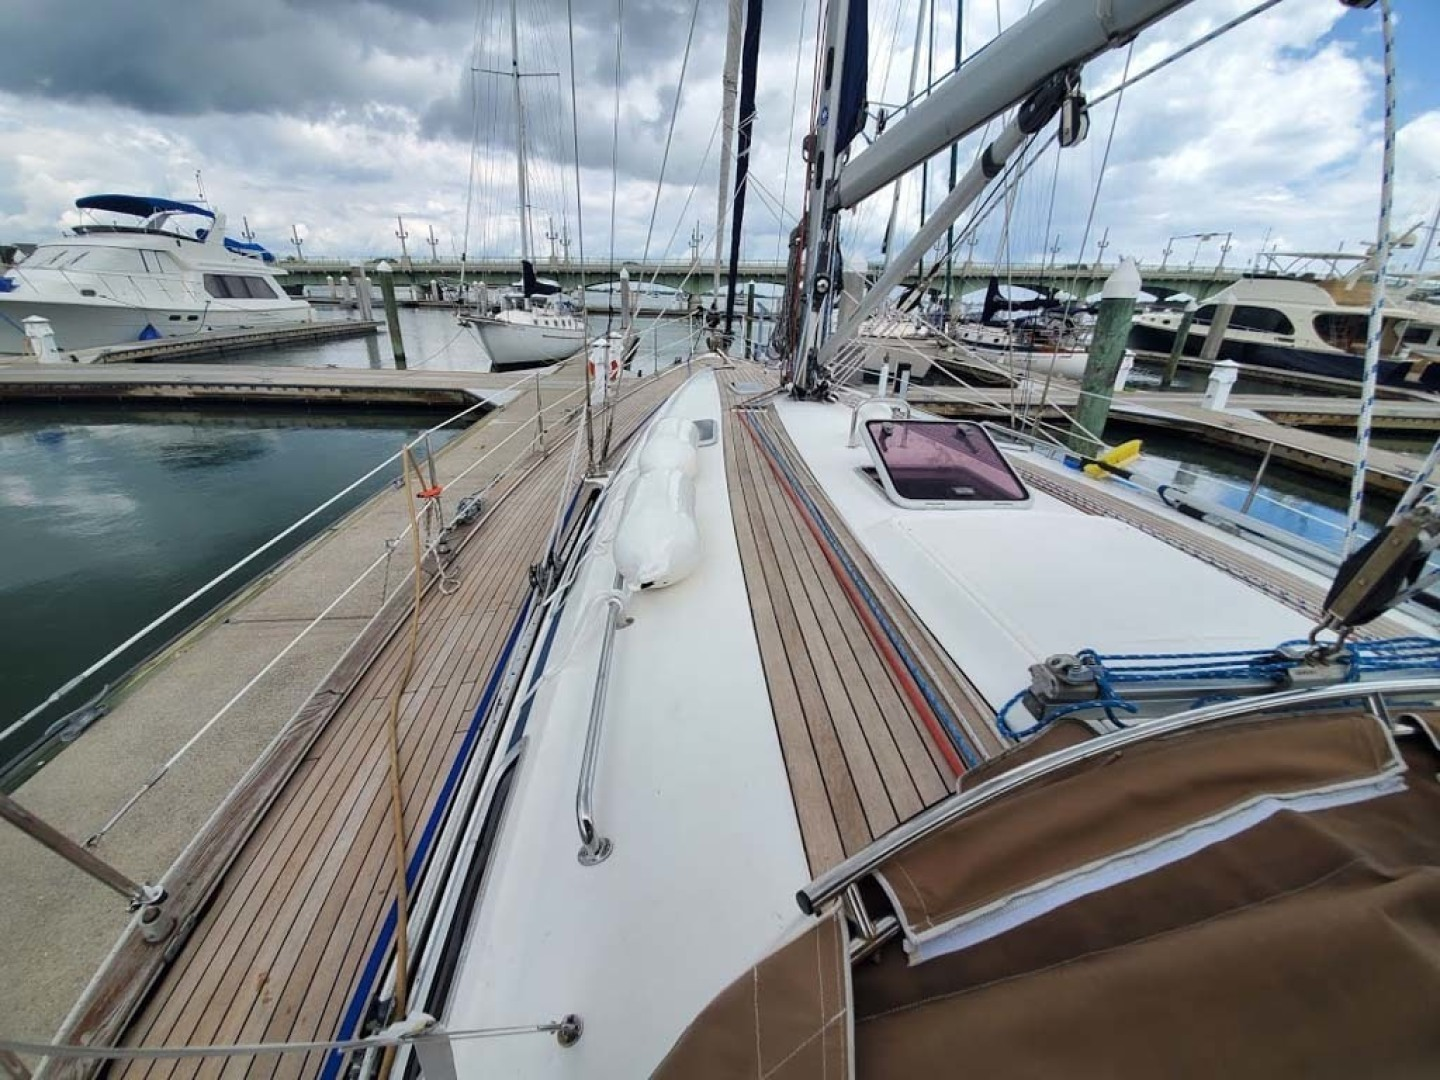 Bavaria-49 2003-BLUE CLOUD LADY Jacksonville-Florida-United States-Looking Forward-1412452 | Thumbnail